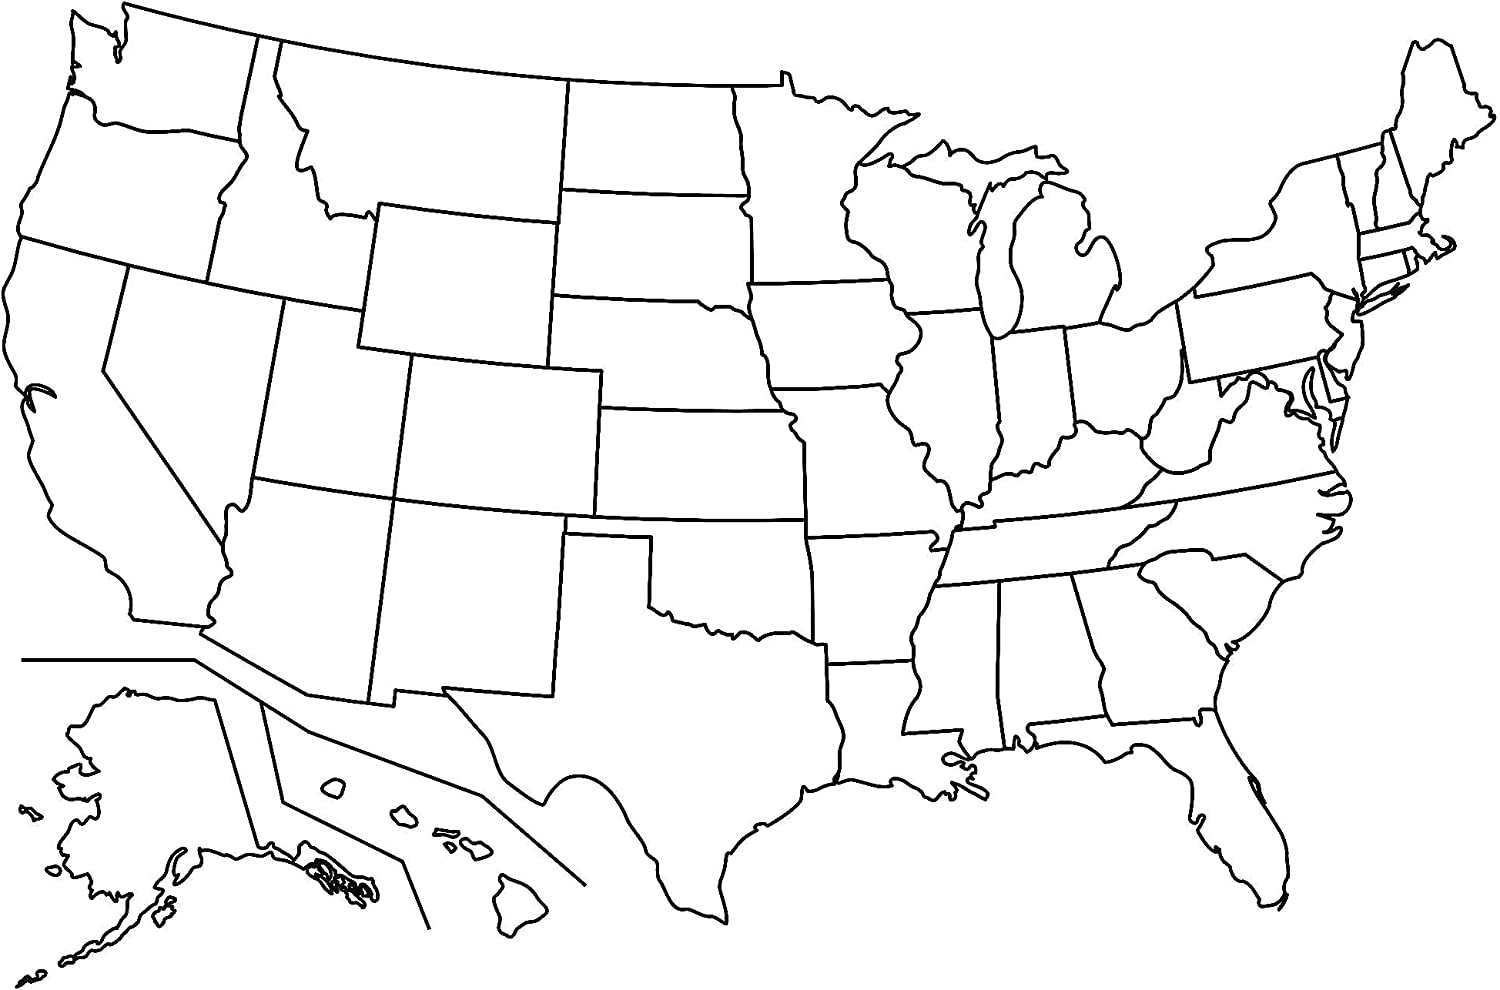 Black And White Map Of The Us Amazon.com: Map   Us Map No Labels Blank Simple of United States